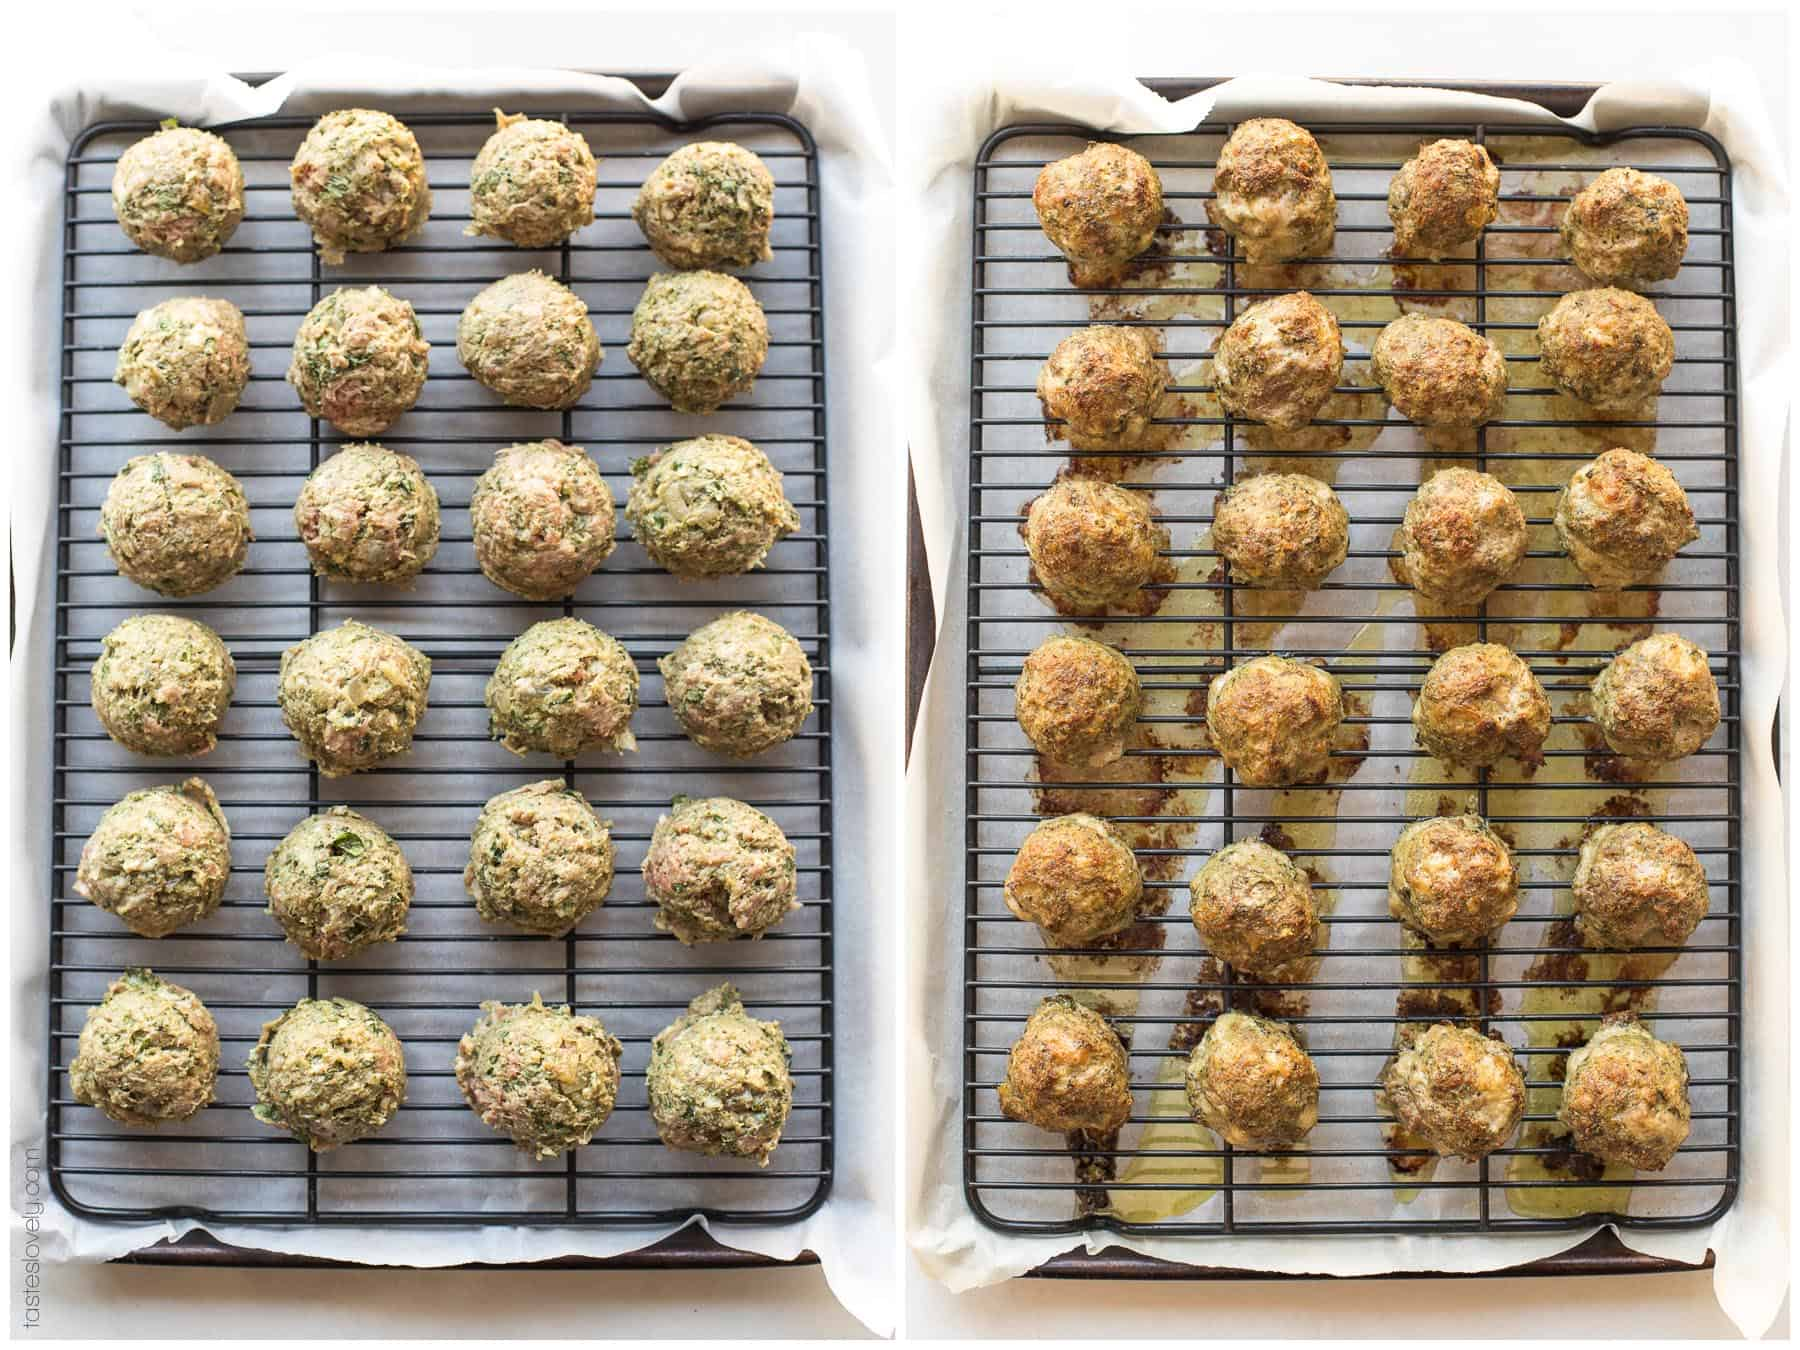 Before and after of baking pesto meatballs